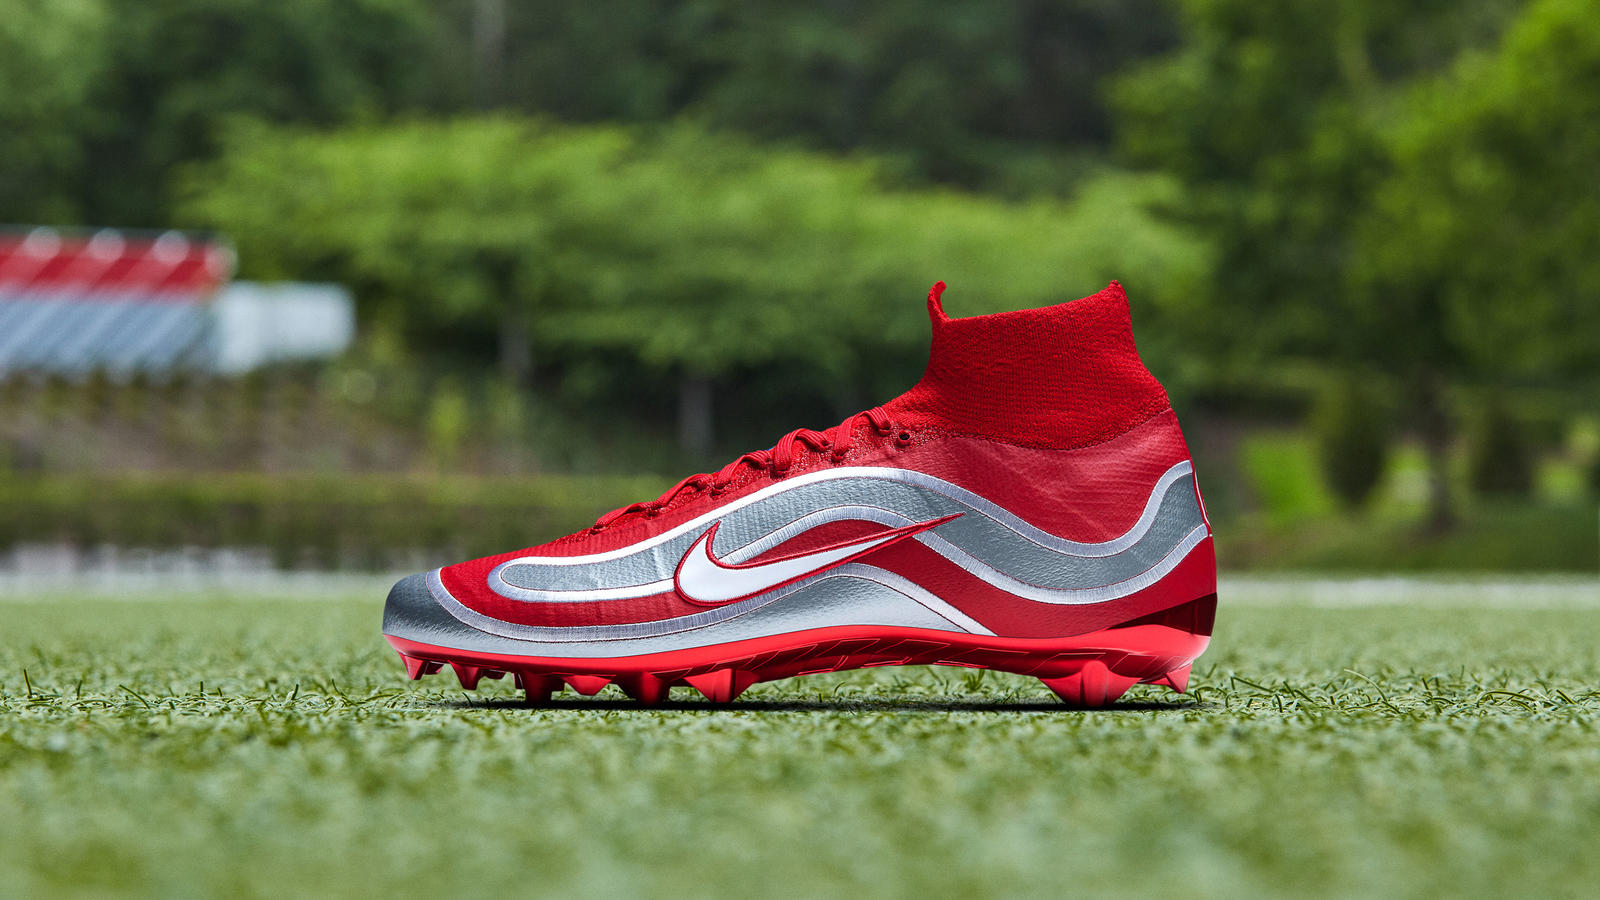 Nike Mercurial Cleat (Odell Beckham Jr. Special Edition) - Nike News d65daf9be9d0c